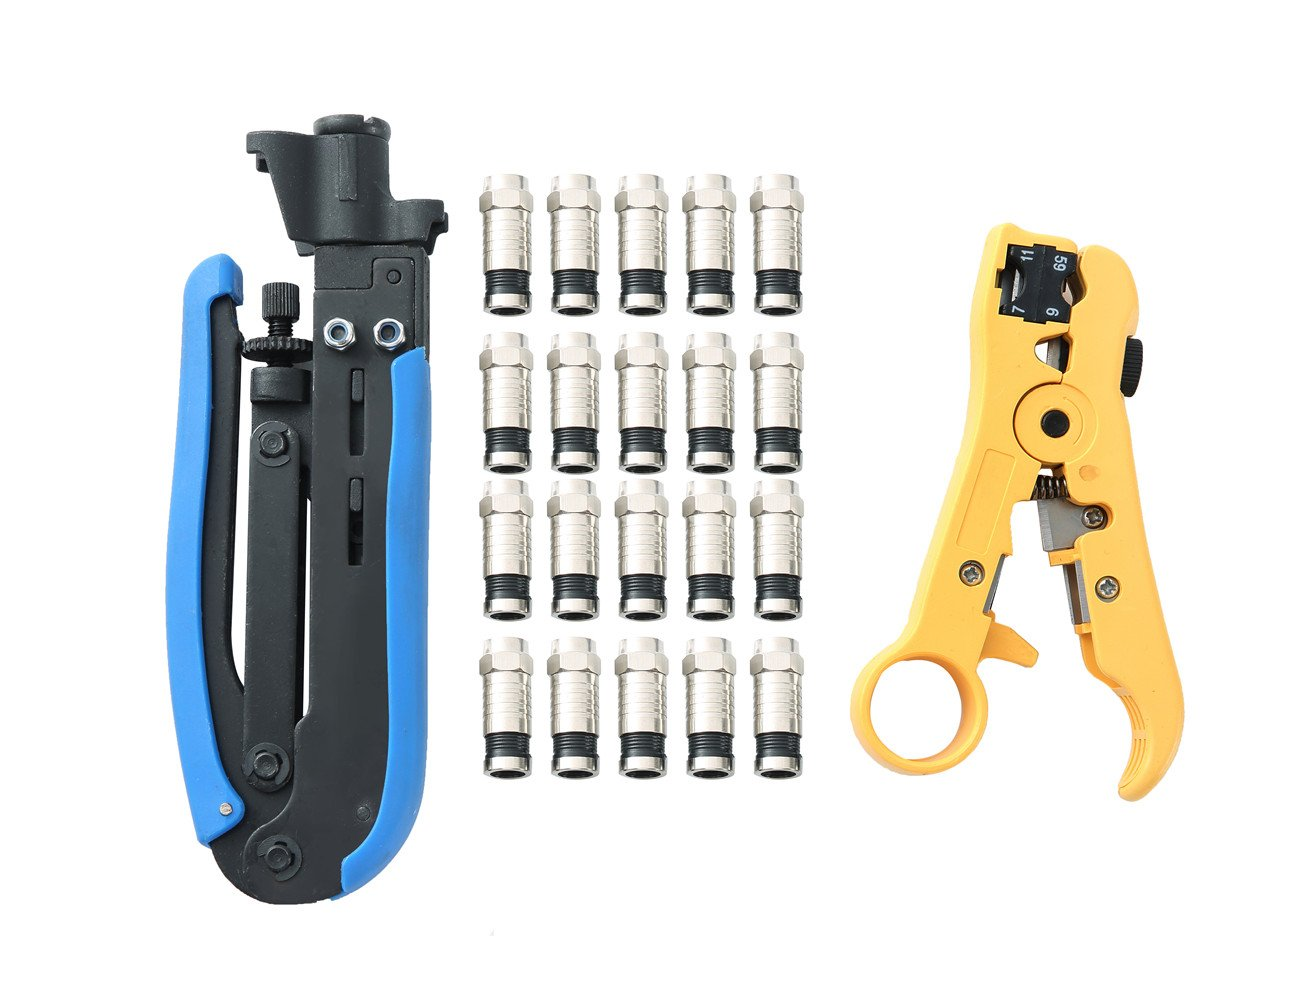 FLK Tech Compression Tool Coax Cable Crimping Kit with 20 F Compression Connectors